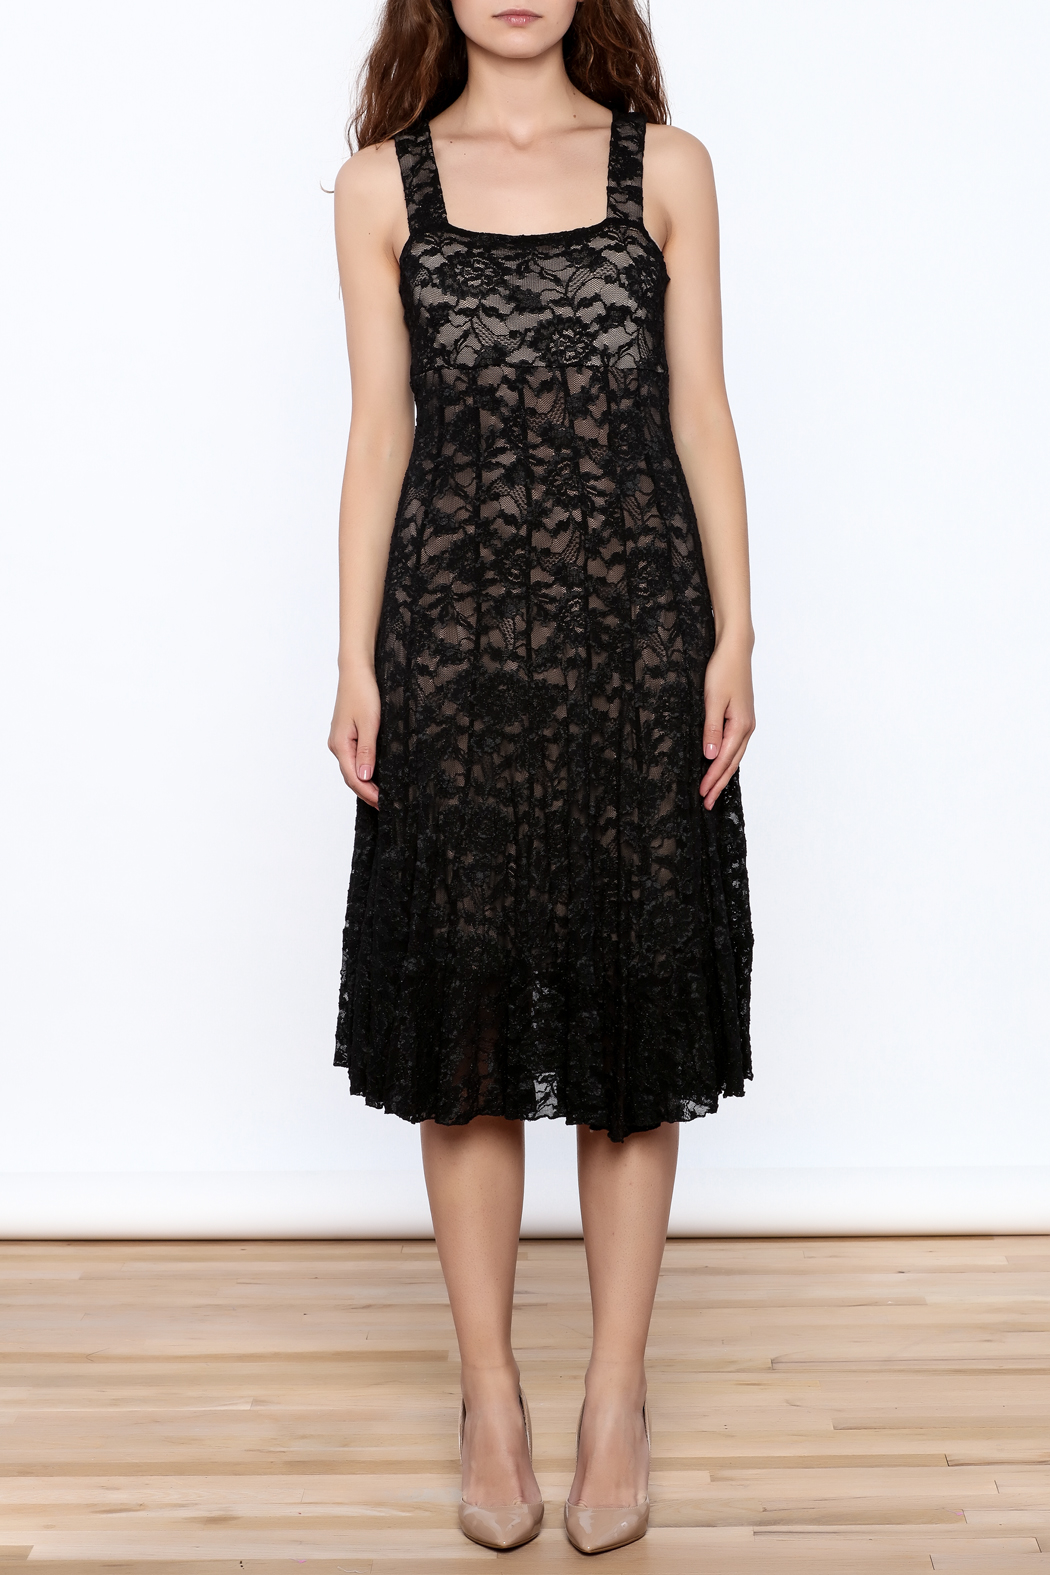 Sharon Max Black Lace Midi Dress - Front Cropped Image